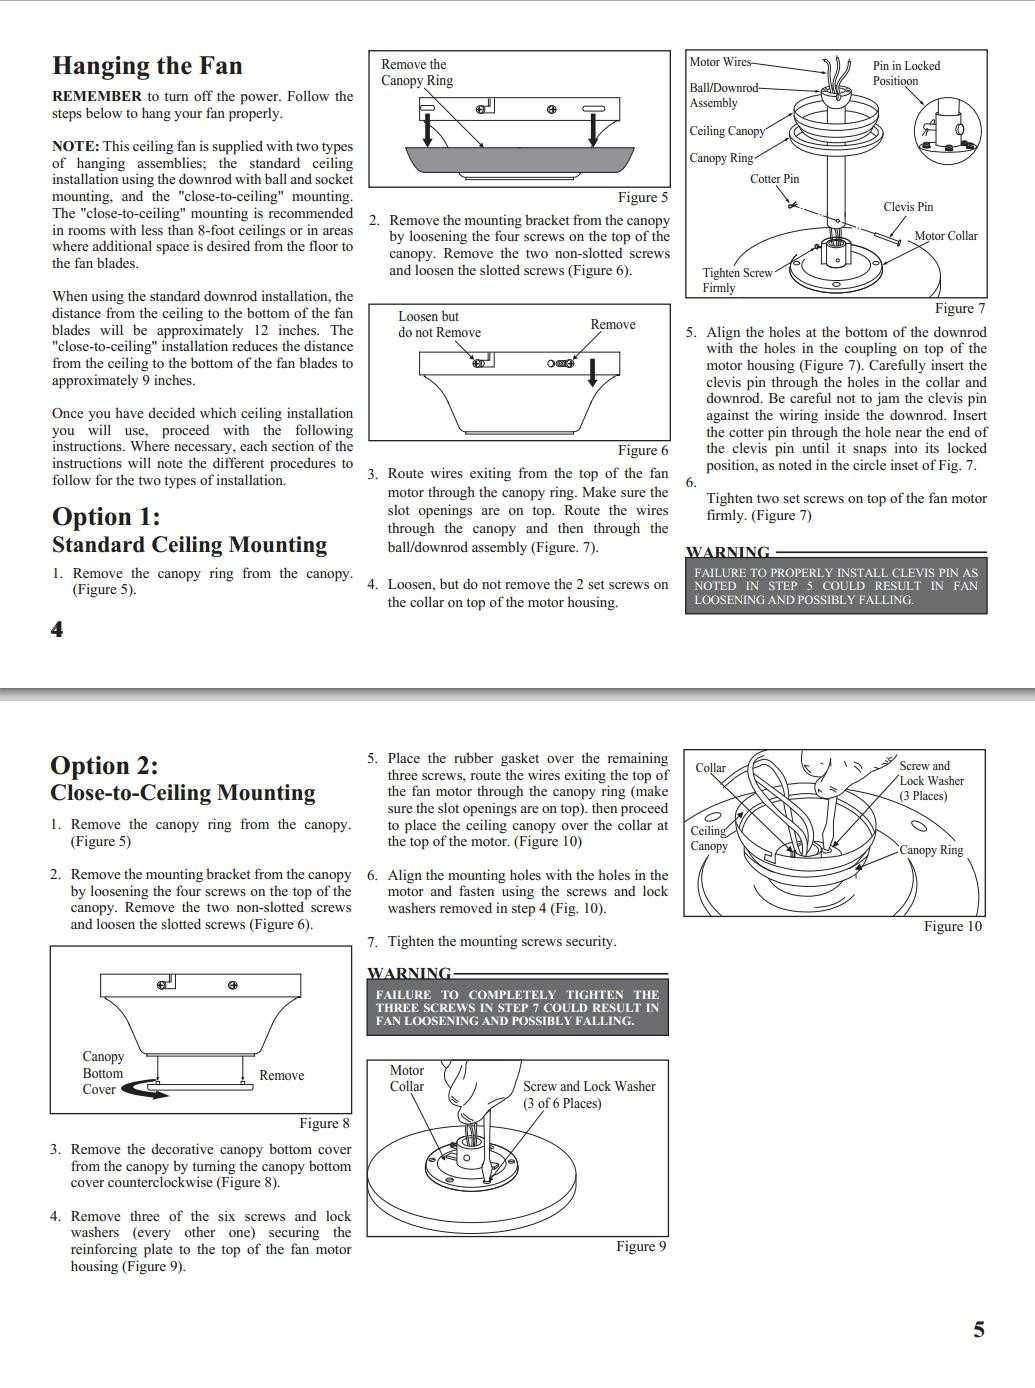 Convert Ceiling Fan To A Ceiling Hugger The Home Depot Community Ceiling Fan Diy Home Repair Flush Mount Ceiling Fan